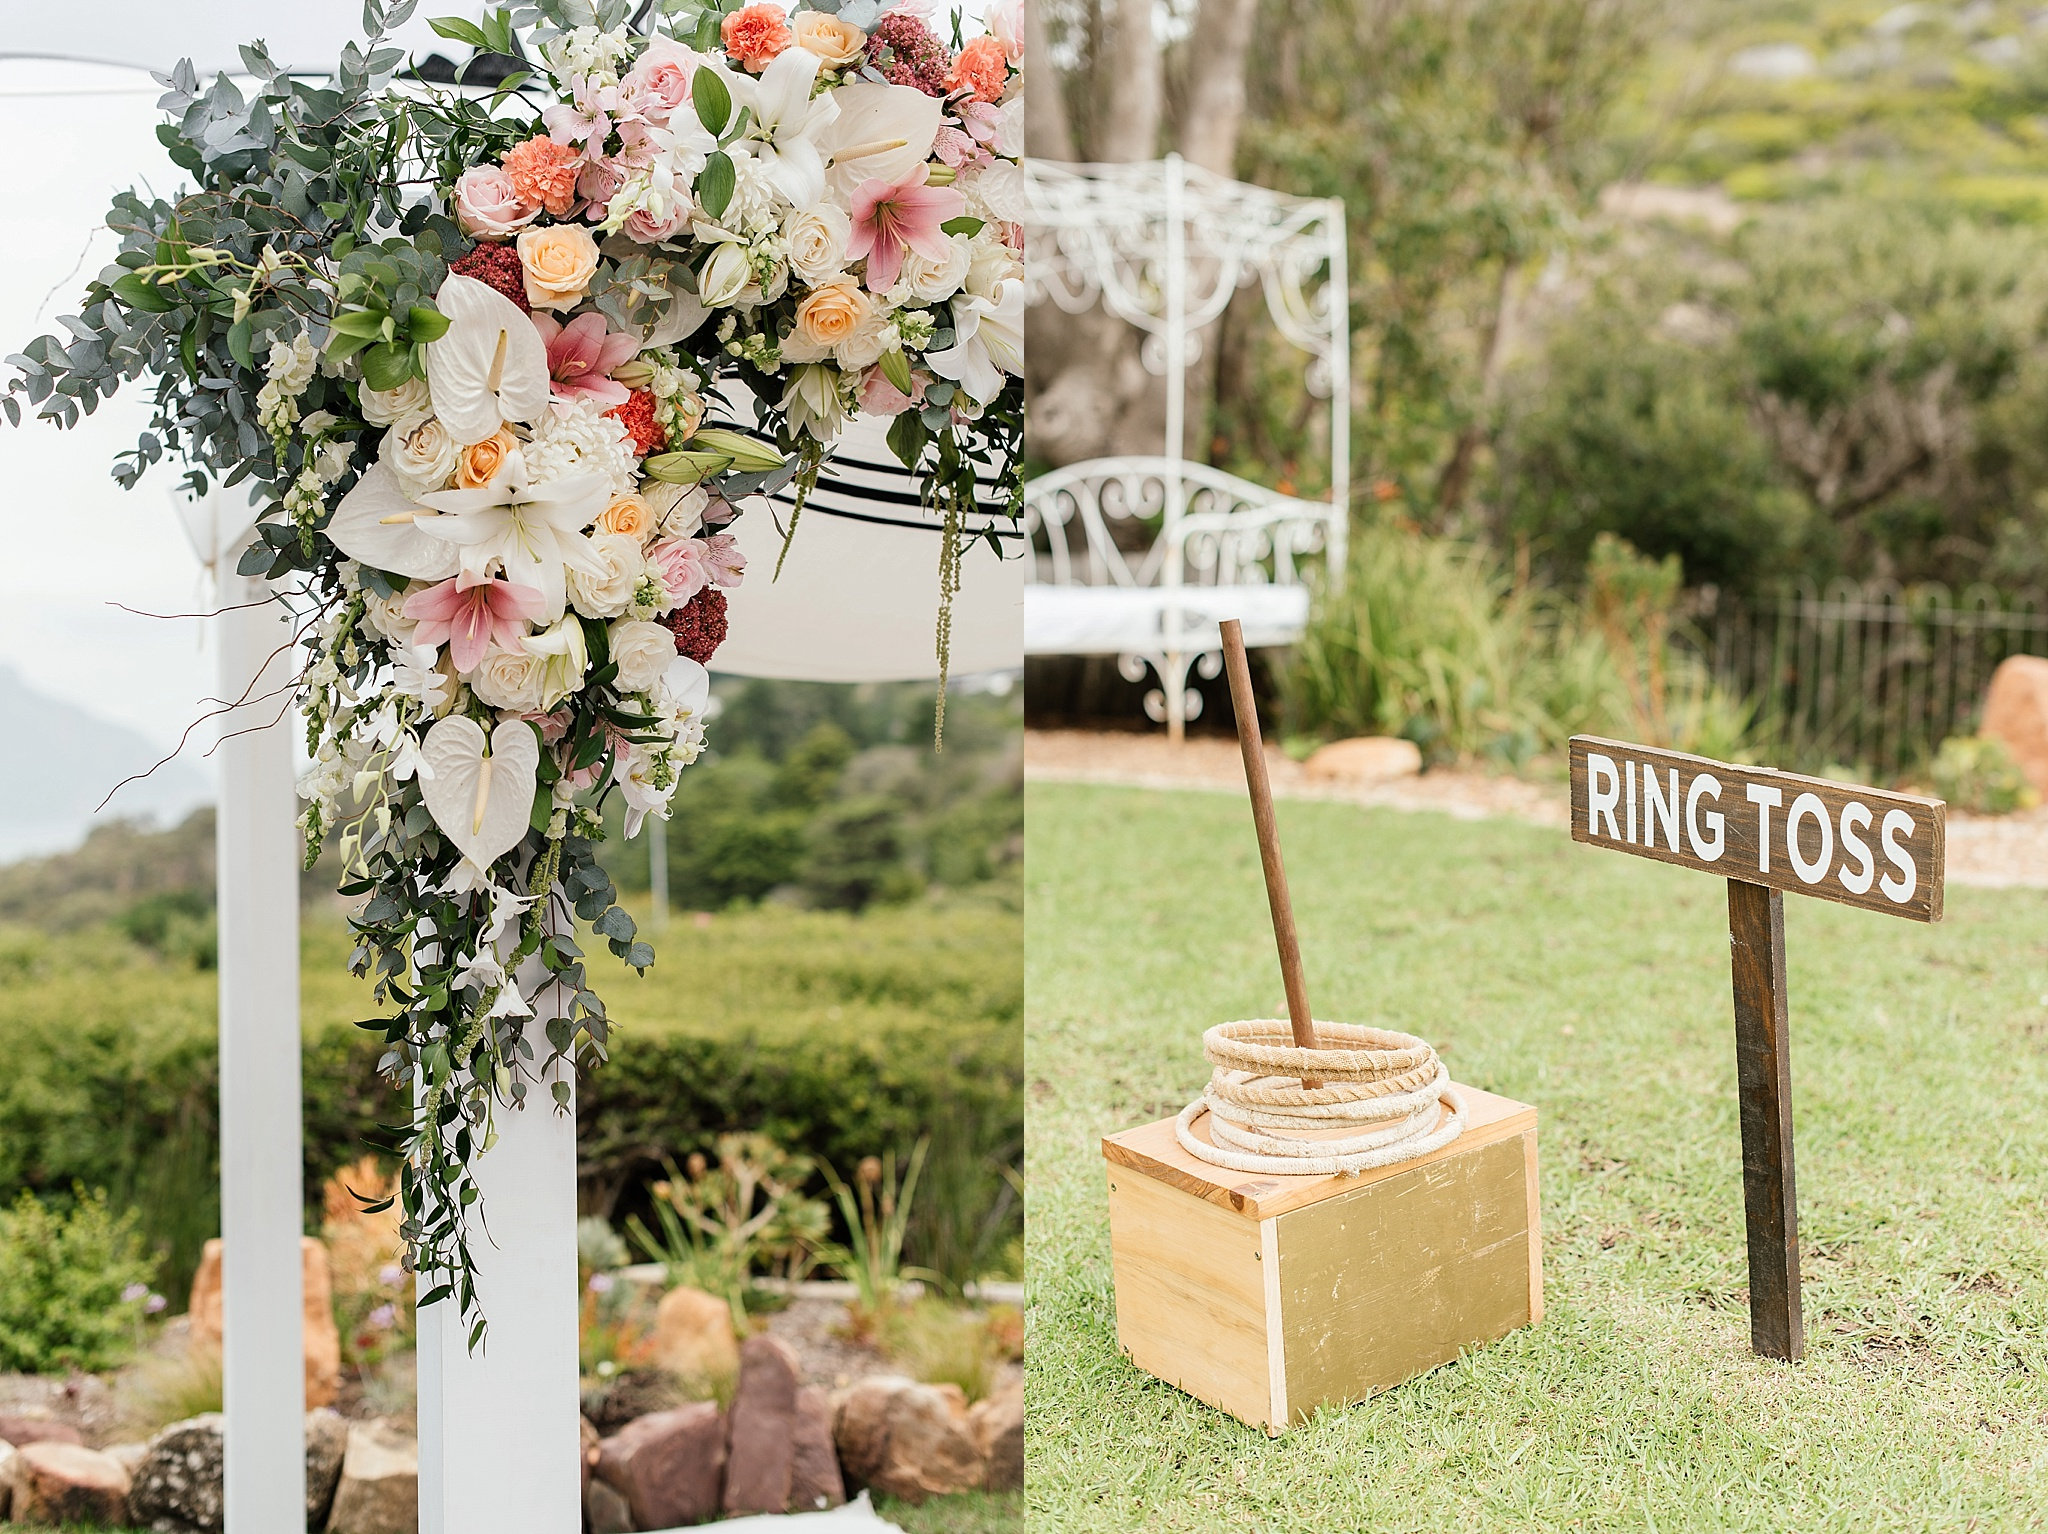 Cape Town Wedding Photographer Darren Bester - SuikerBossie - Stephen and Mikaela_0046.jpg